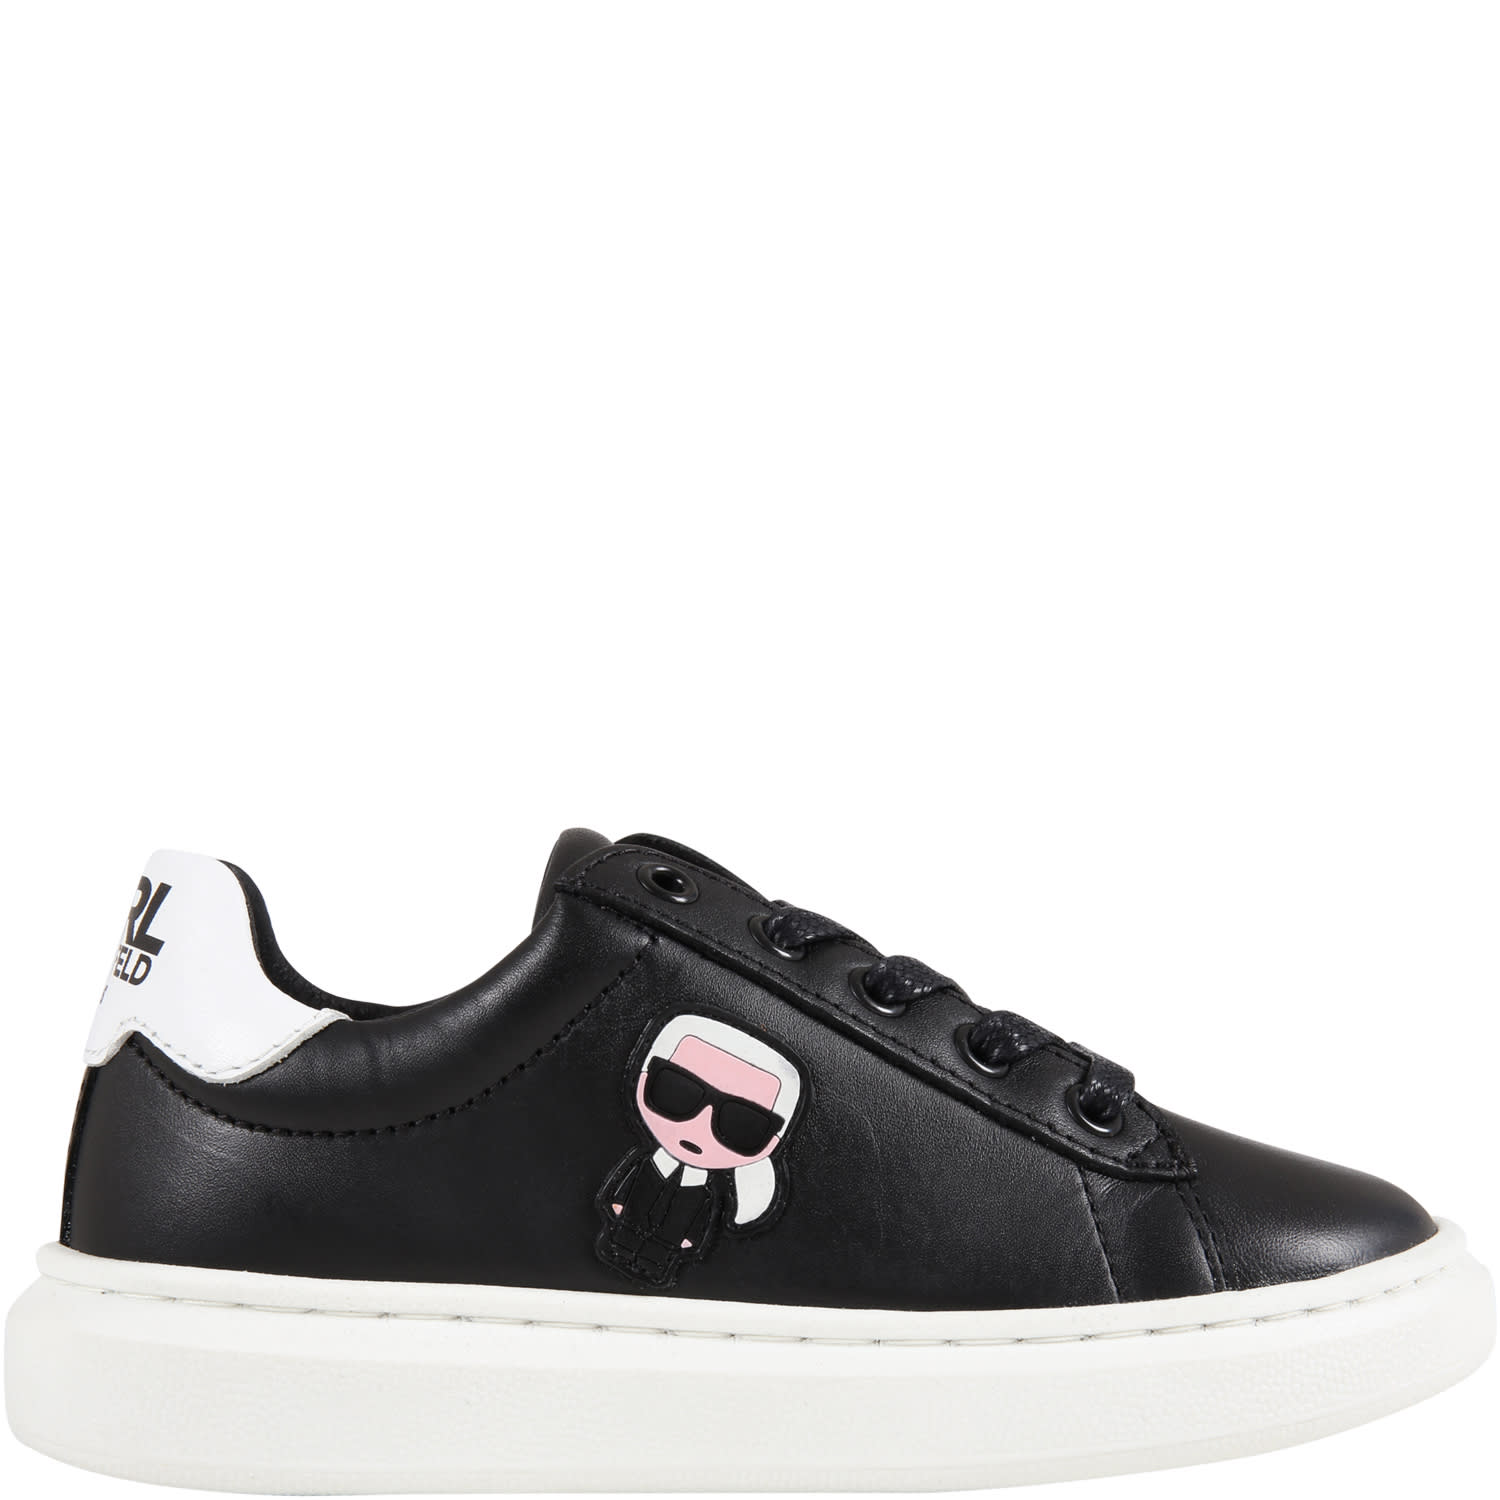 Black Sneakers For Kids With Karl Lagerfeld